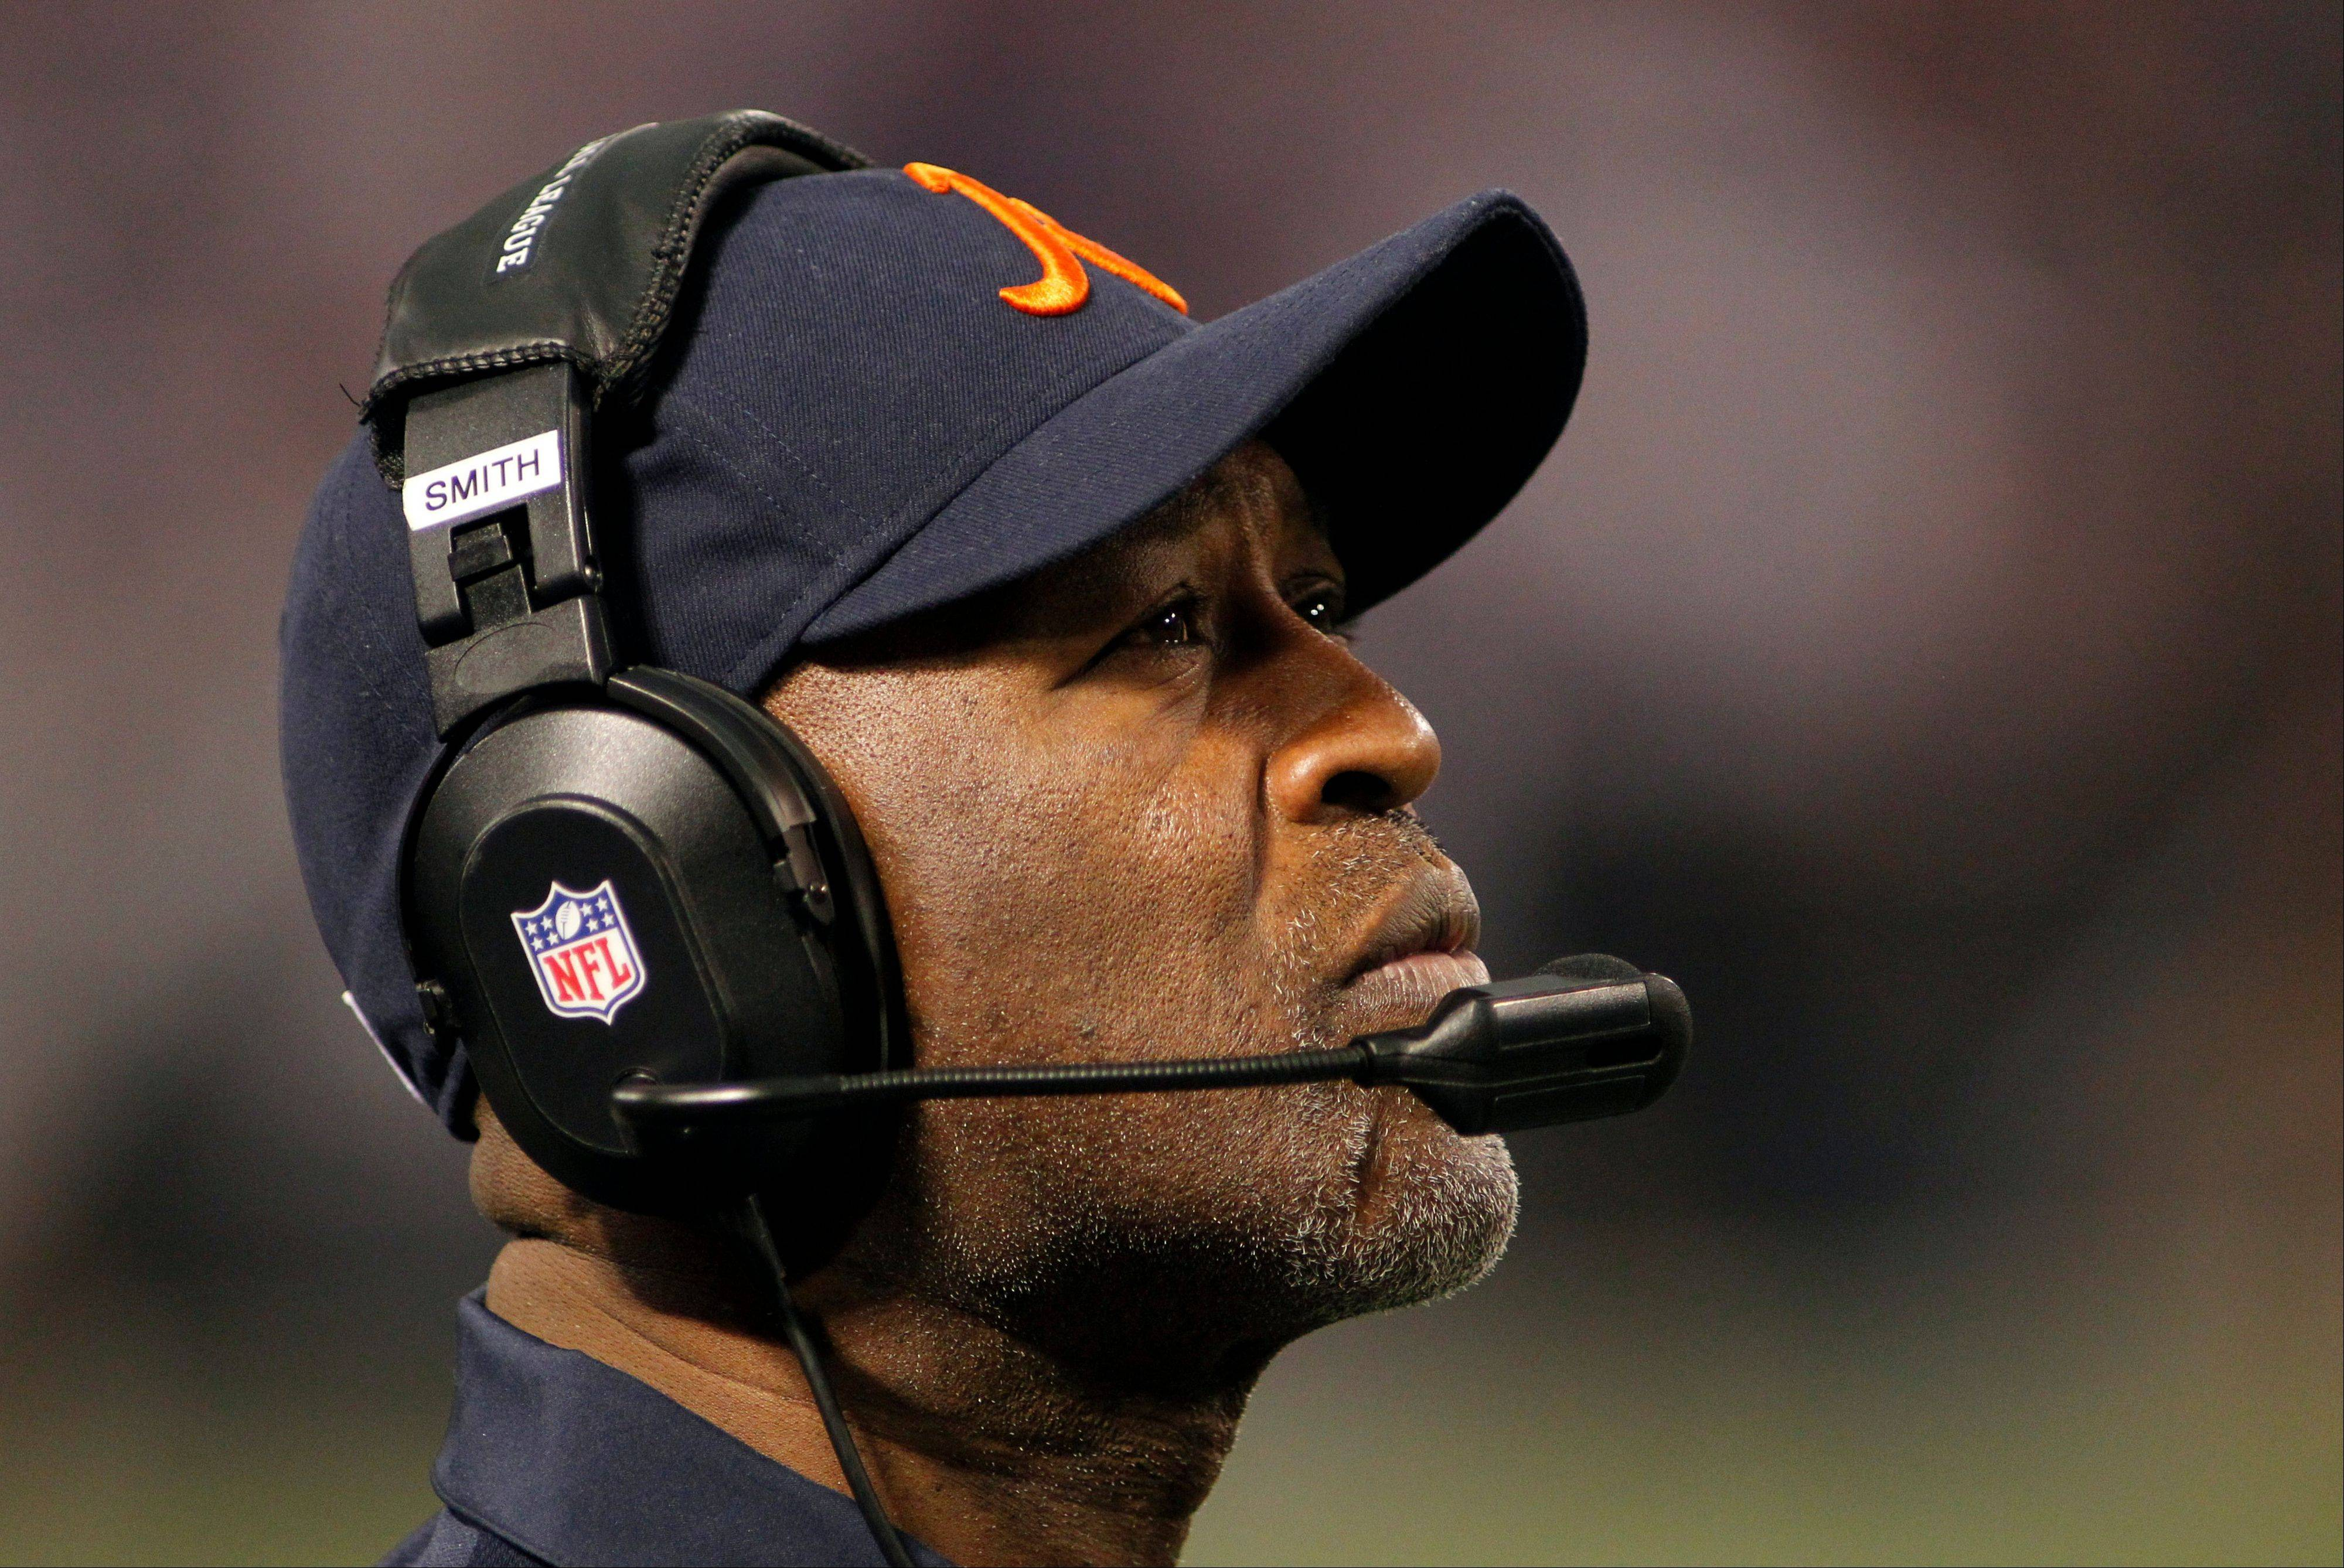 Bears head coach Lovie Smith didn't like what he saw from his team against the Minnesota Vikings Sunday, and he acknowledged Monday that everyone's future is tied to wins and losses, and he expects better play from his team.